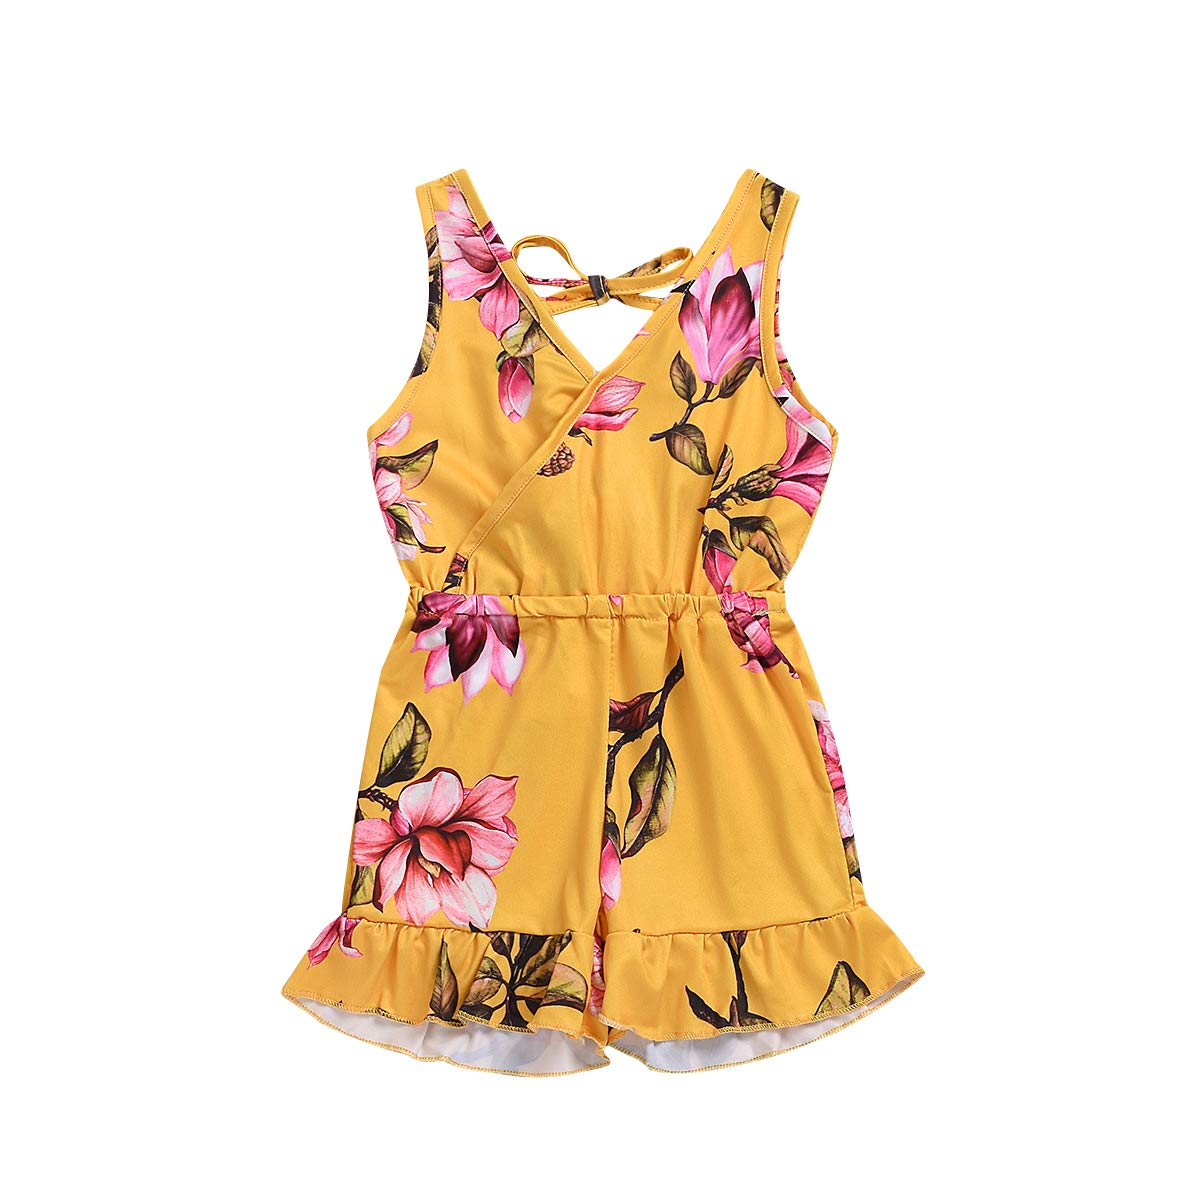 YOUNGER TREE Toddler Baby Girls Summer Outfits V-Neck Jumpsuit Flower Printed Sleeveless Elastic Waist Short Sets